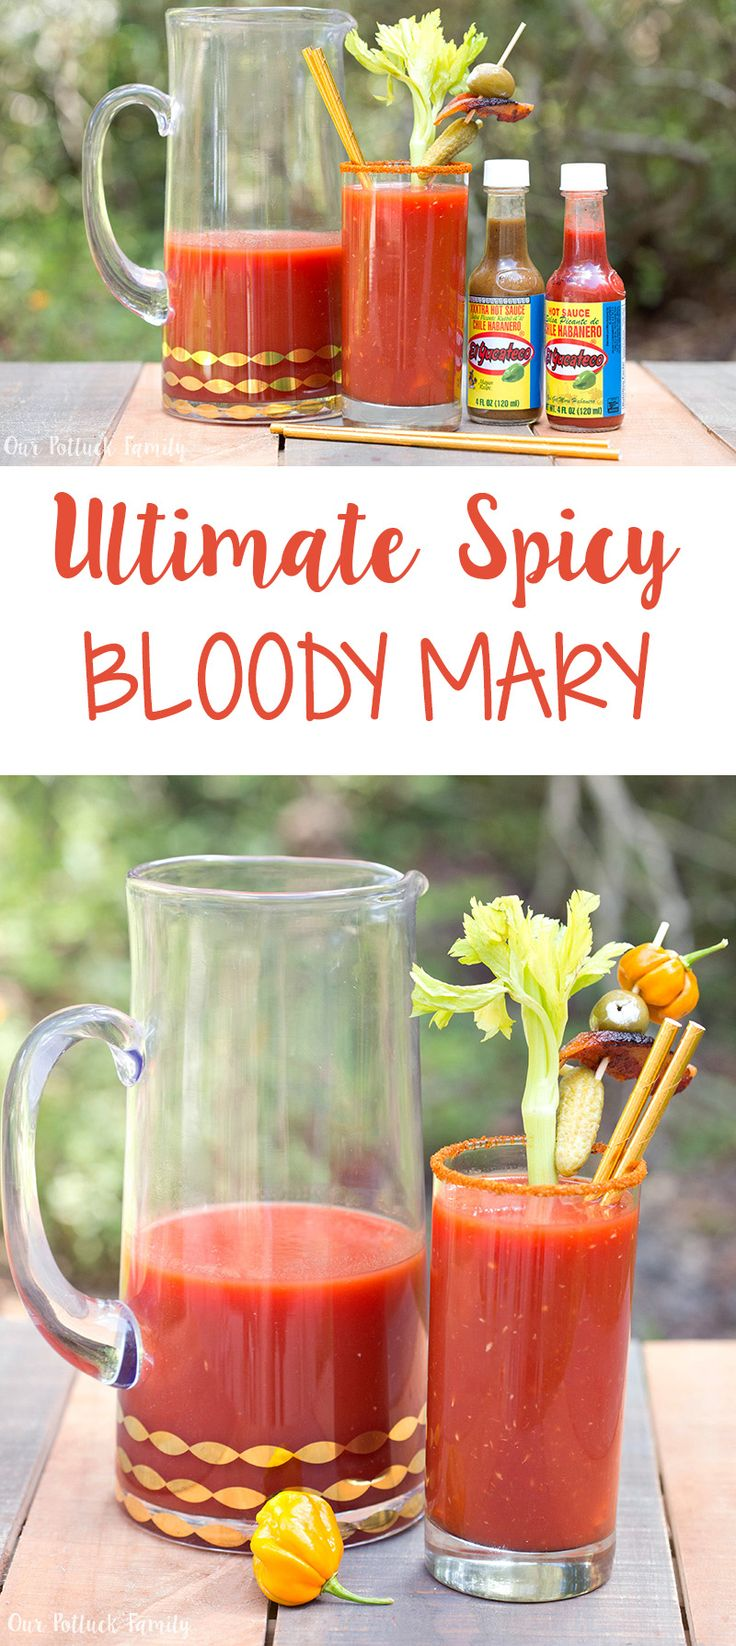 Ultimate Spicy Bloody Mary - Our Potluck Family